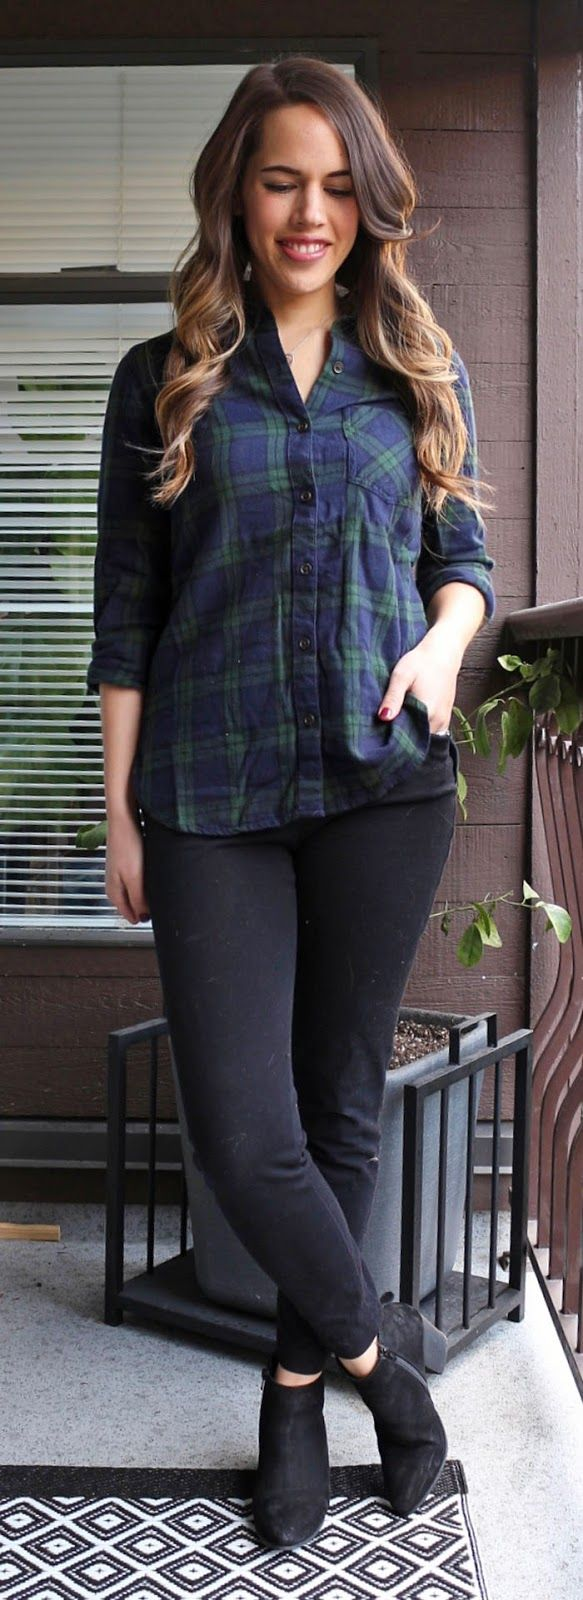 Jules in Flats - Old Navy Plaid and Pixie Pants, Steve Madden Jaydun Booties